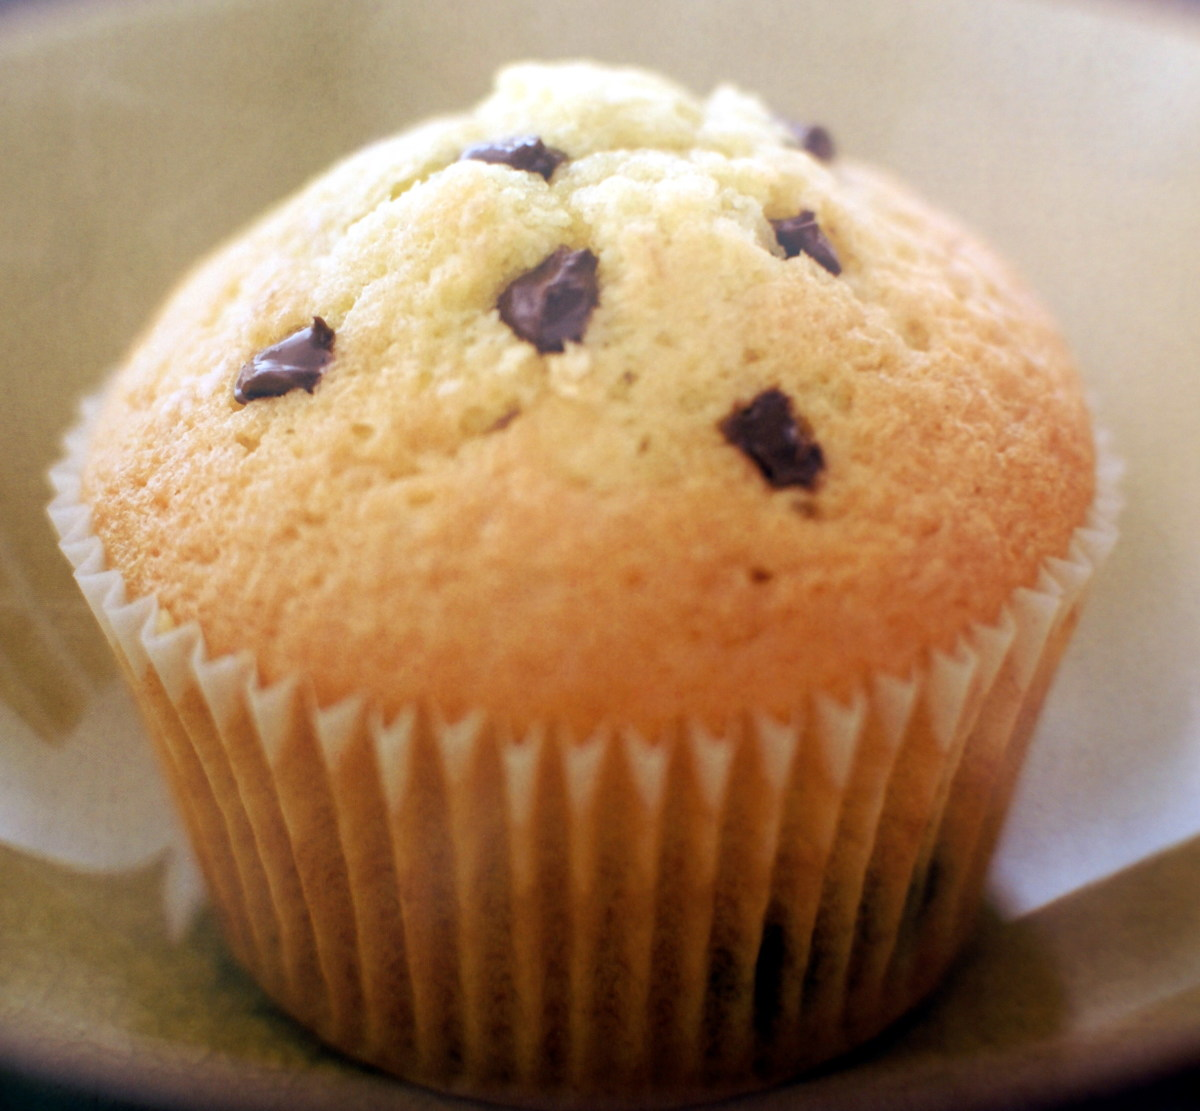 These golden vanilla chocolate chip cupcakes are simple but delicious.